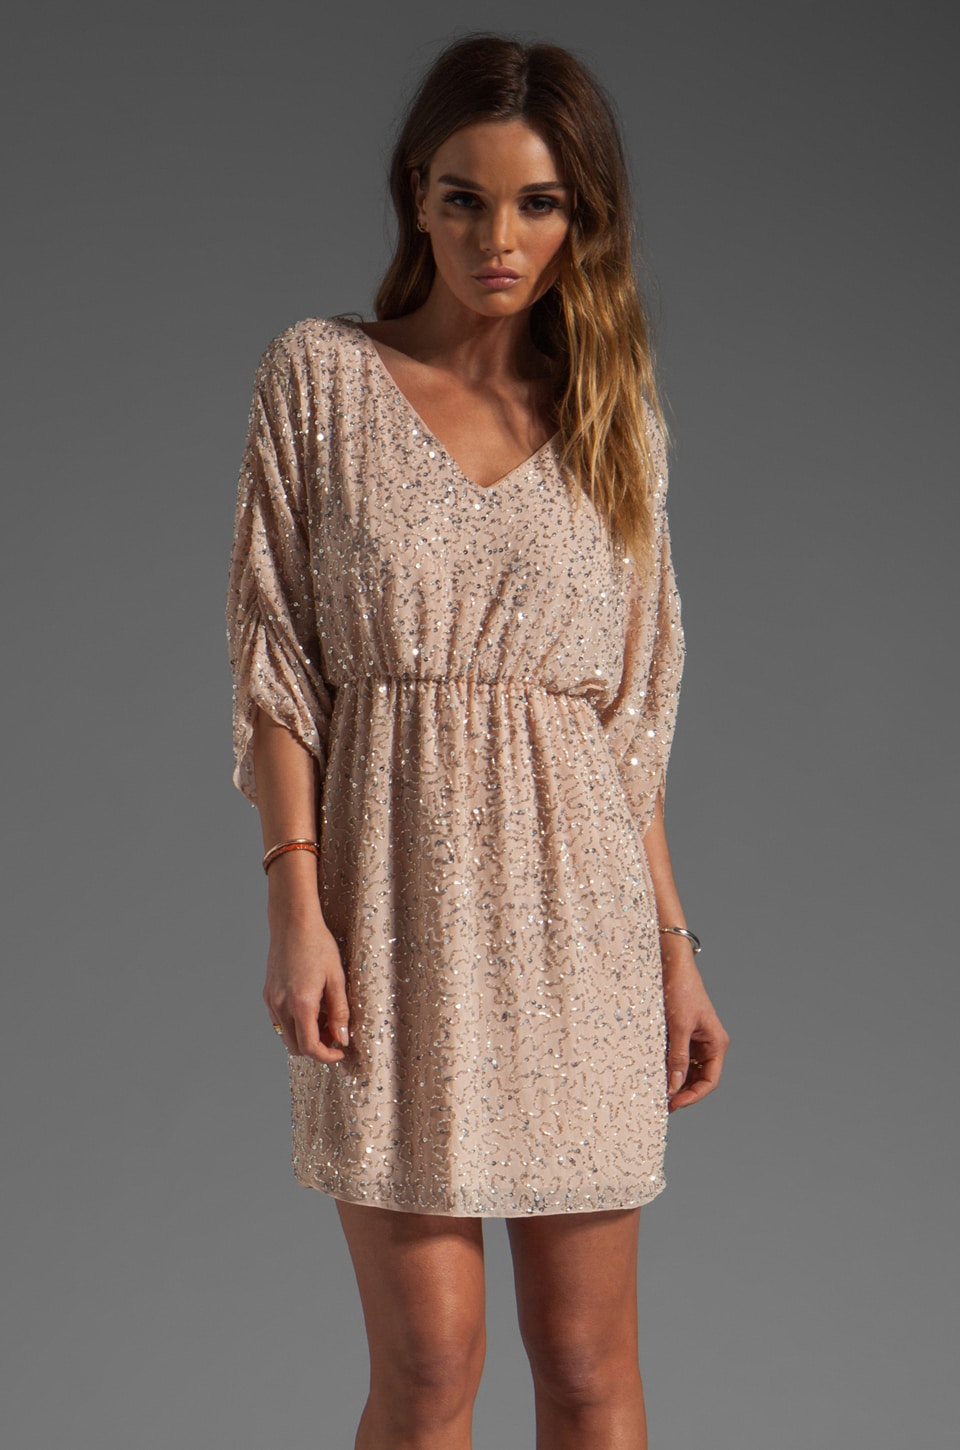 Alice + Olivia Olympia Embellished Tunic Dress en Pale Peach/Silver